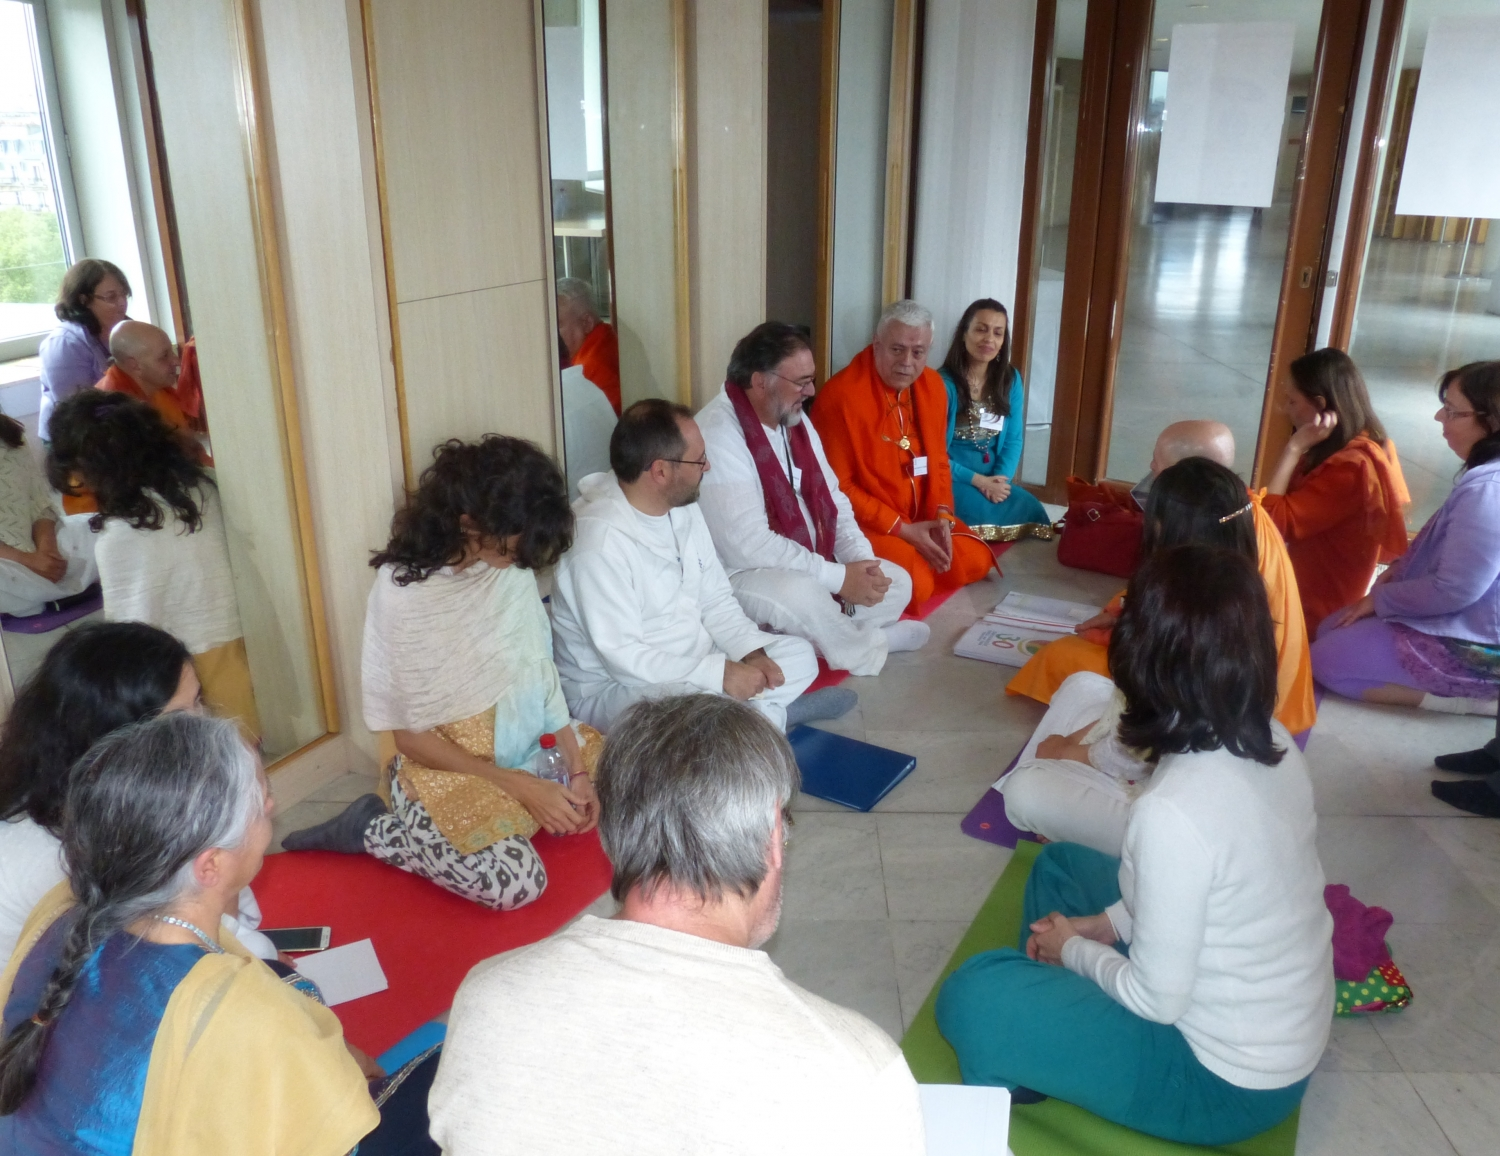 General Assembly of the Iberian Yoga Confederation